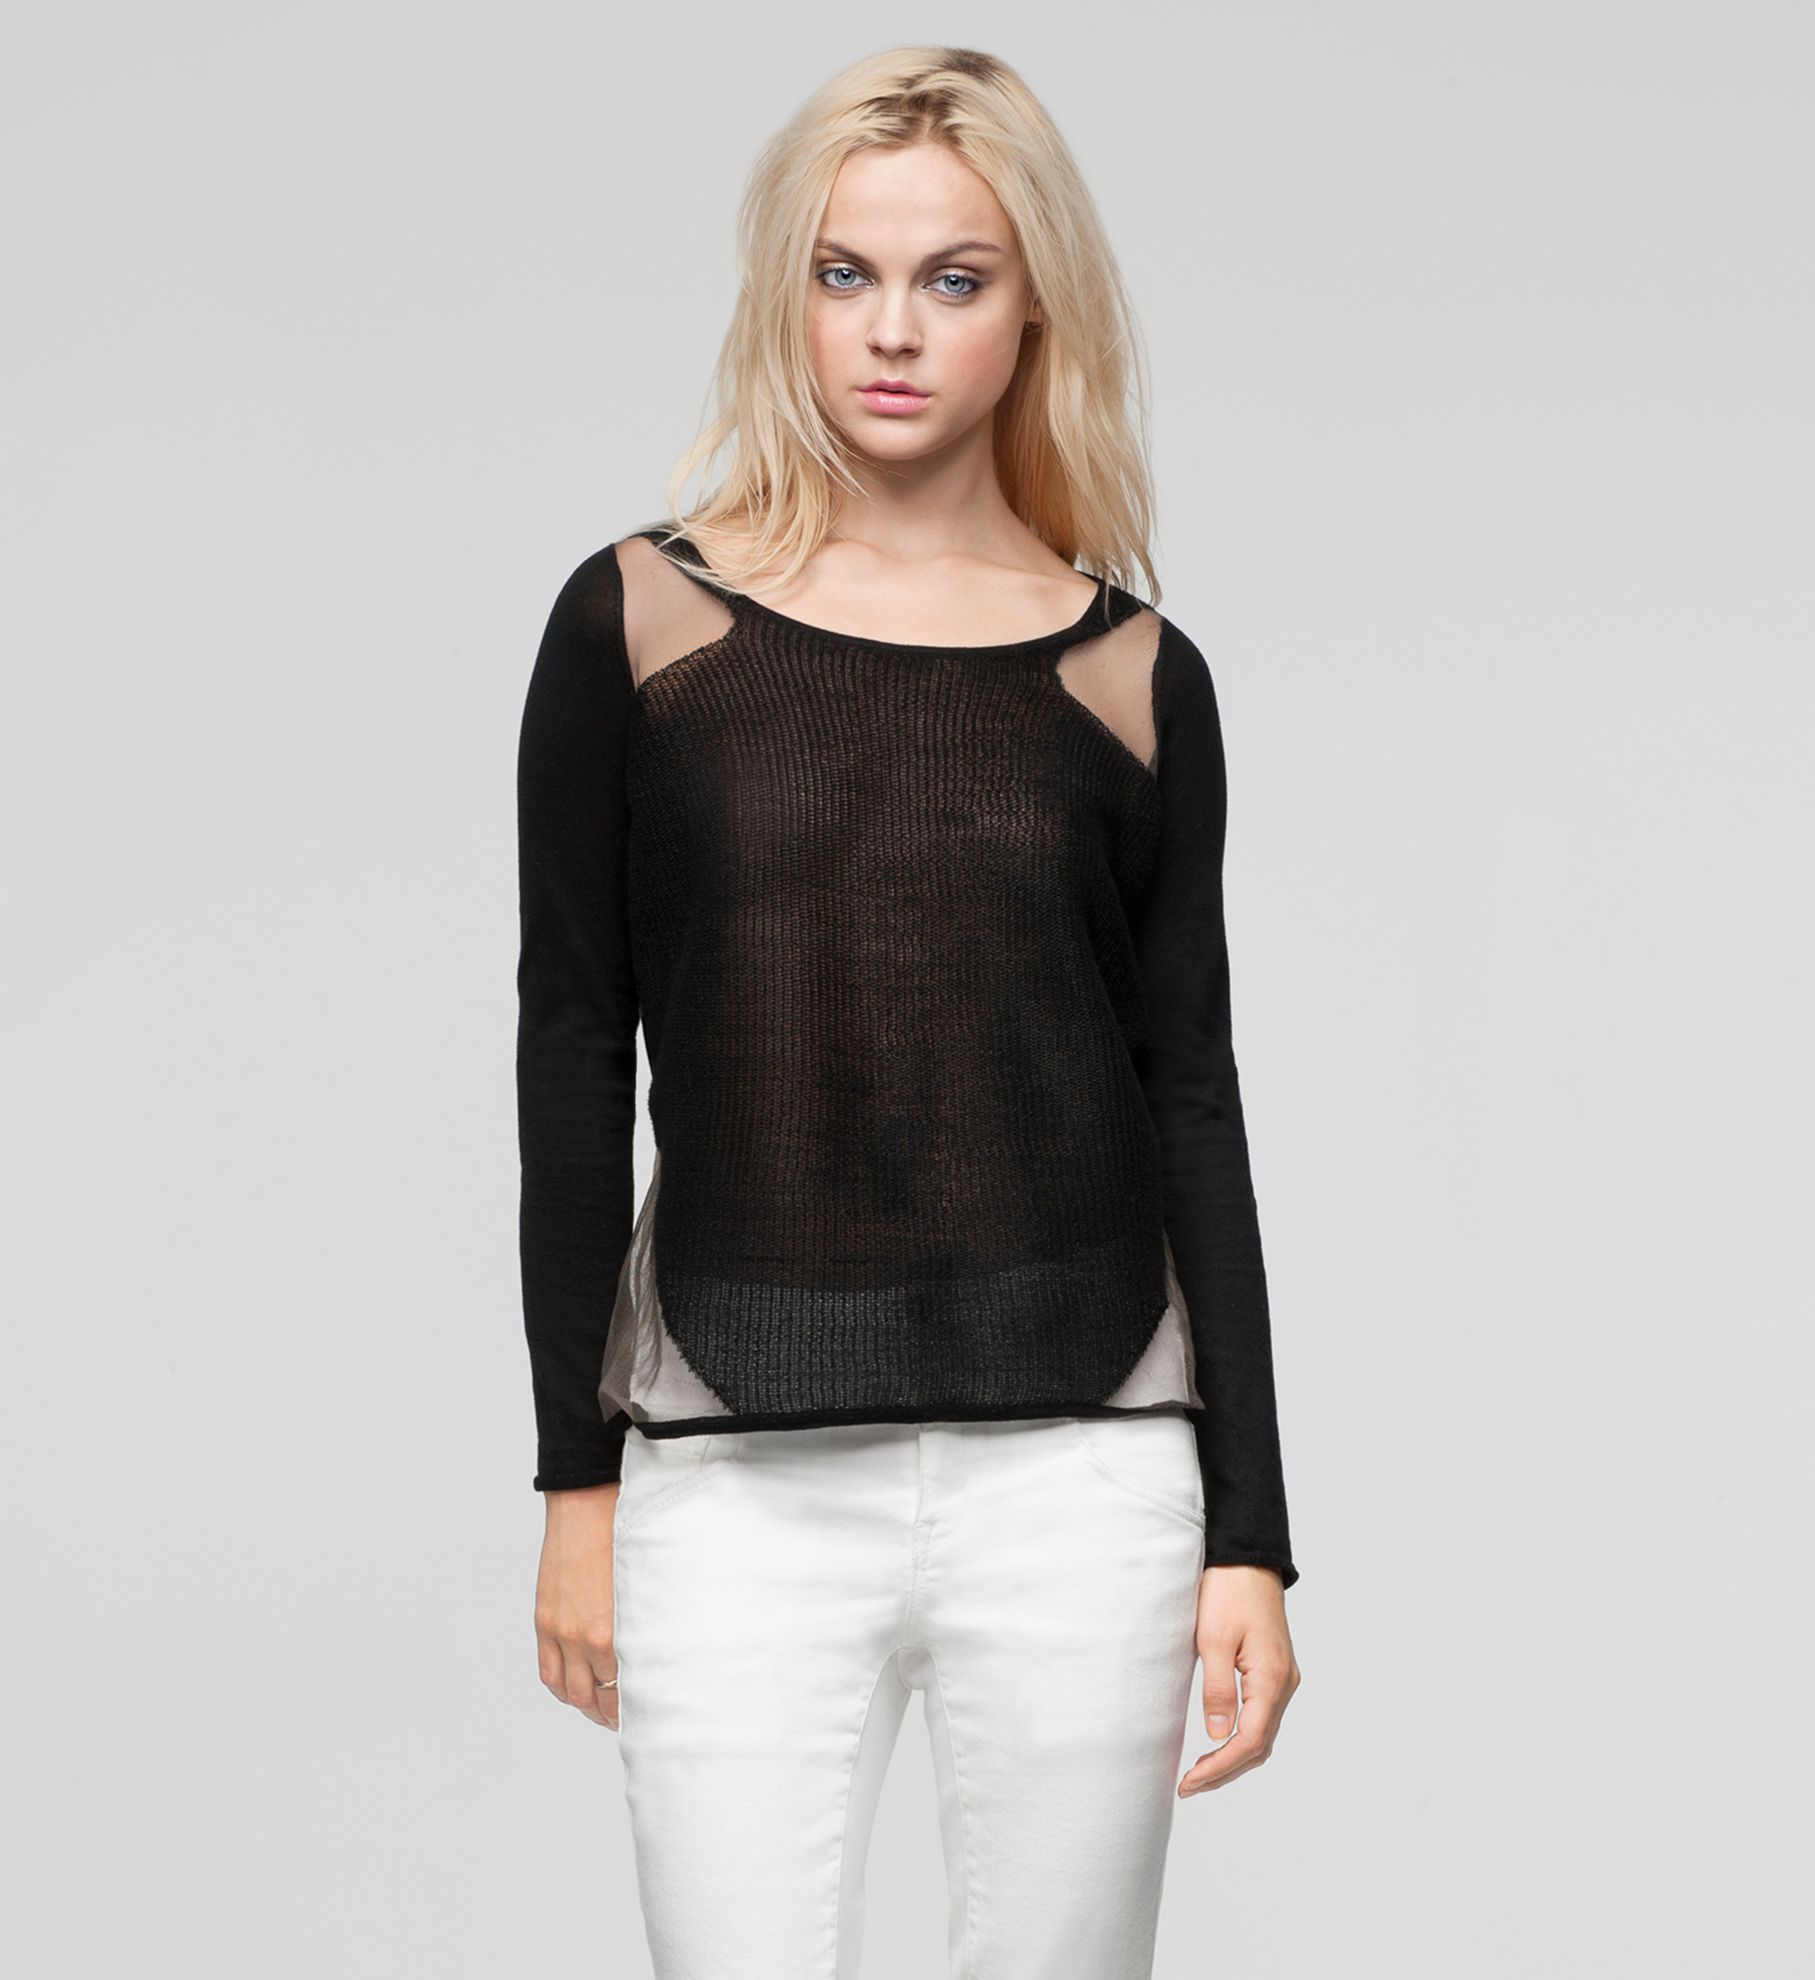 TRANSPARENT GRID SWEATER